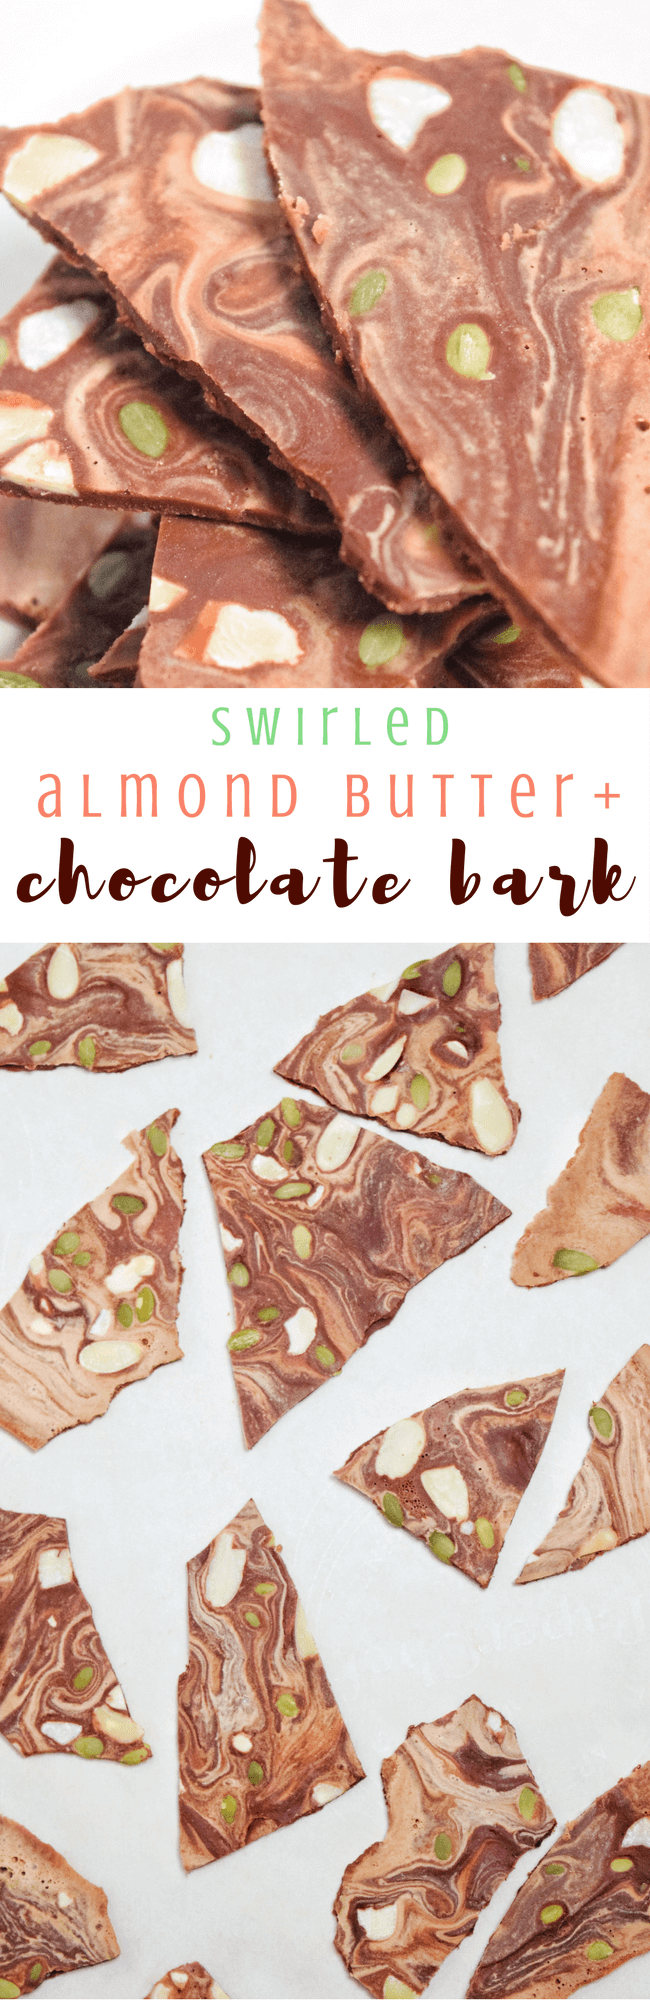 Swirled Almond Butter + Chocolate Bark | Personally Paleo